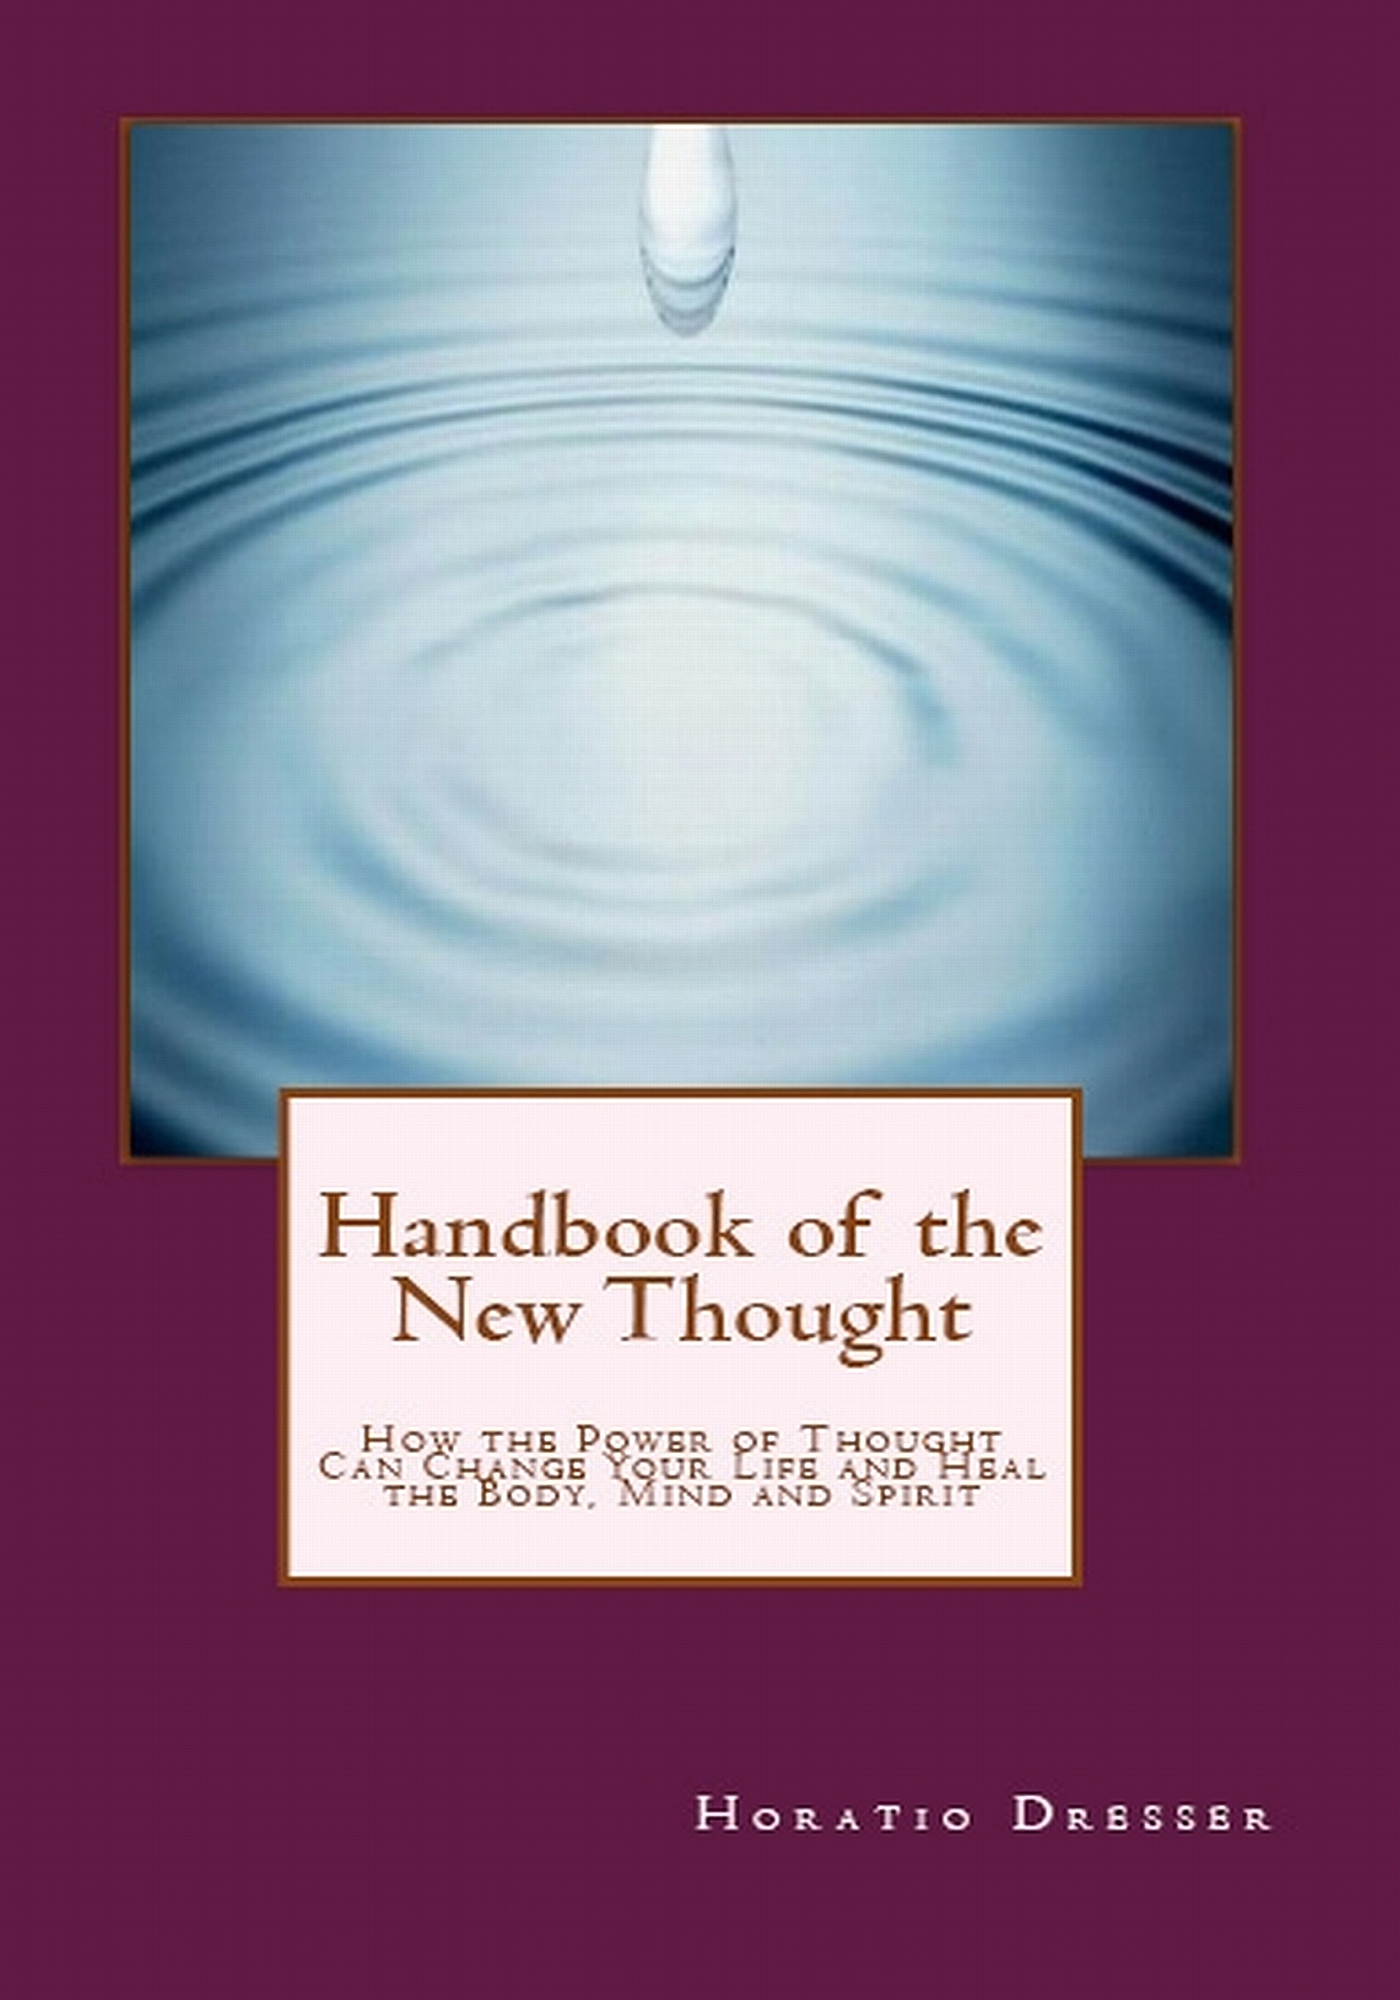 Handbook of the New Thought